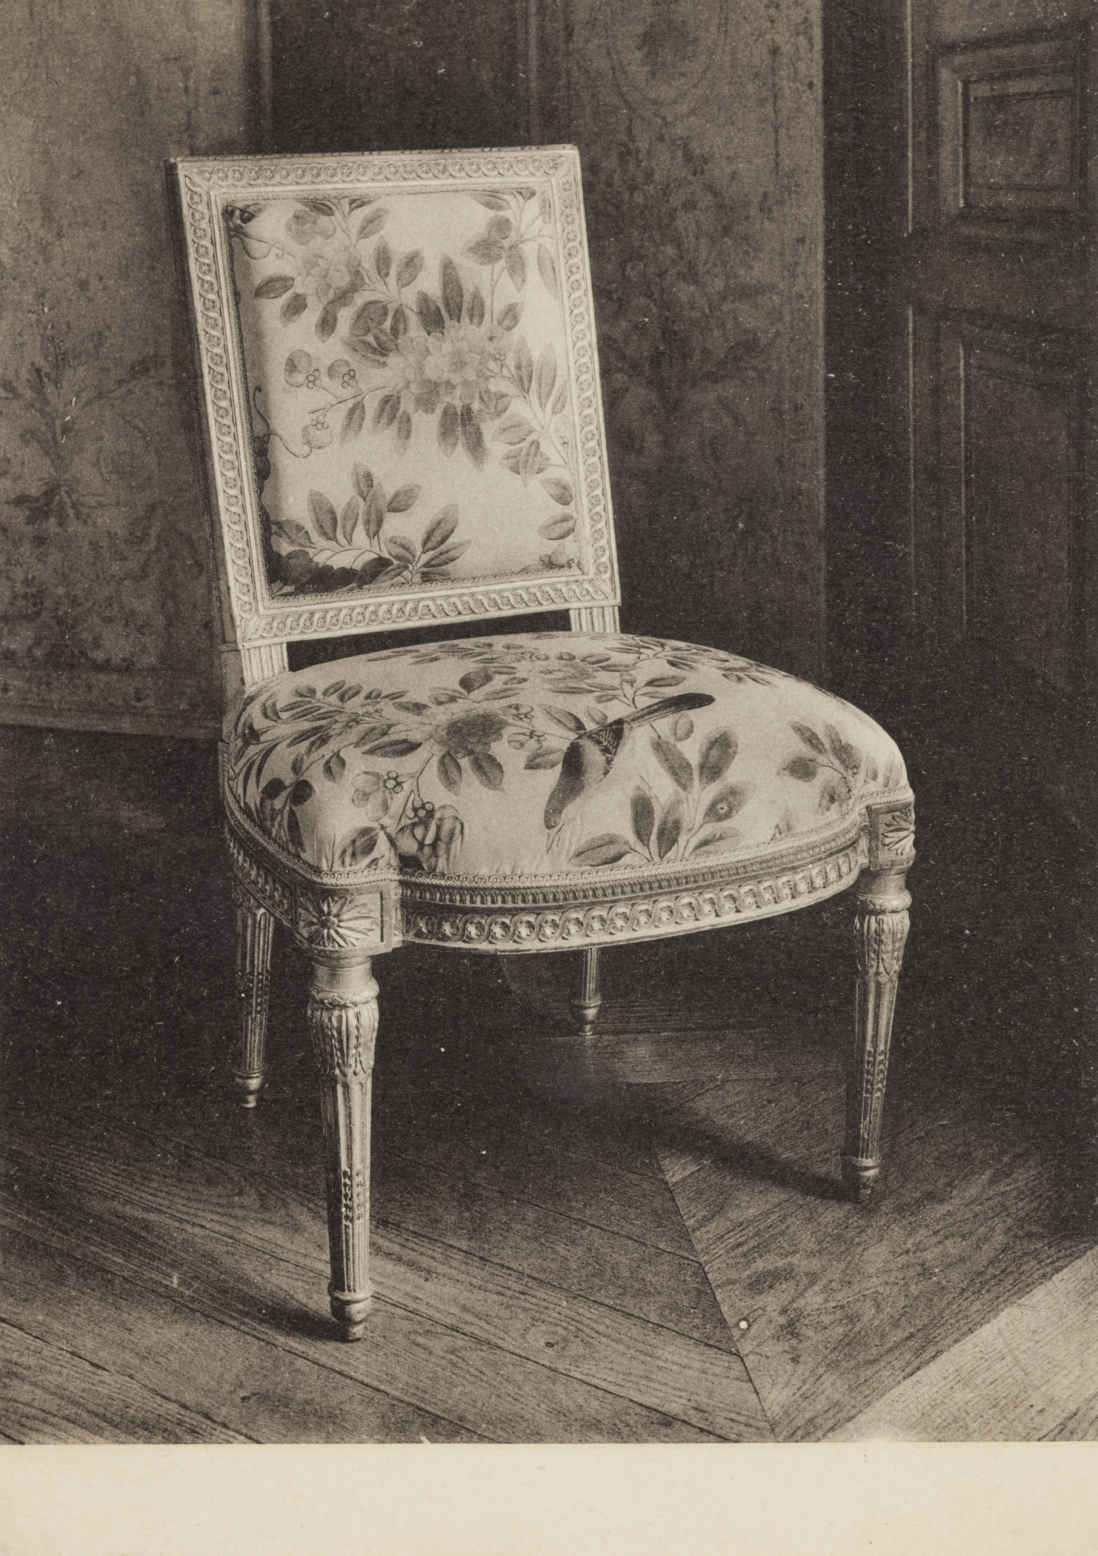 Postcard of a 'Chaise en bois sculpte' dated to 1791